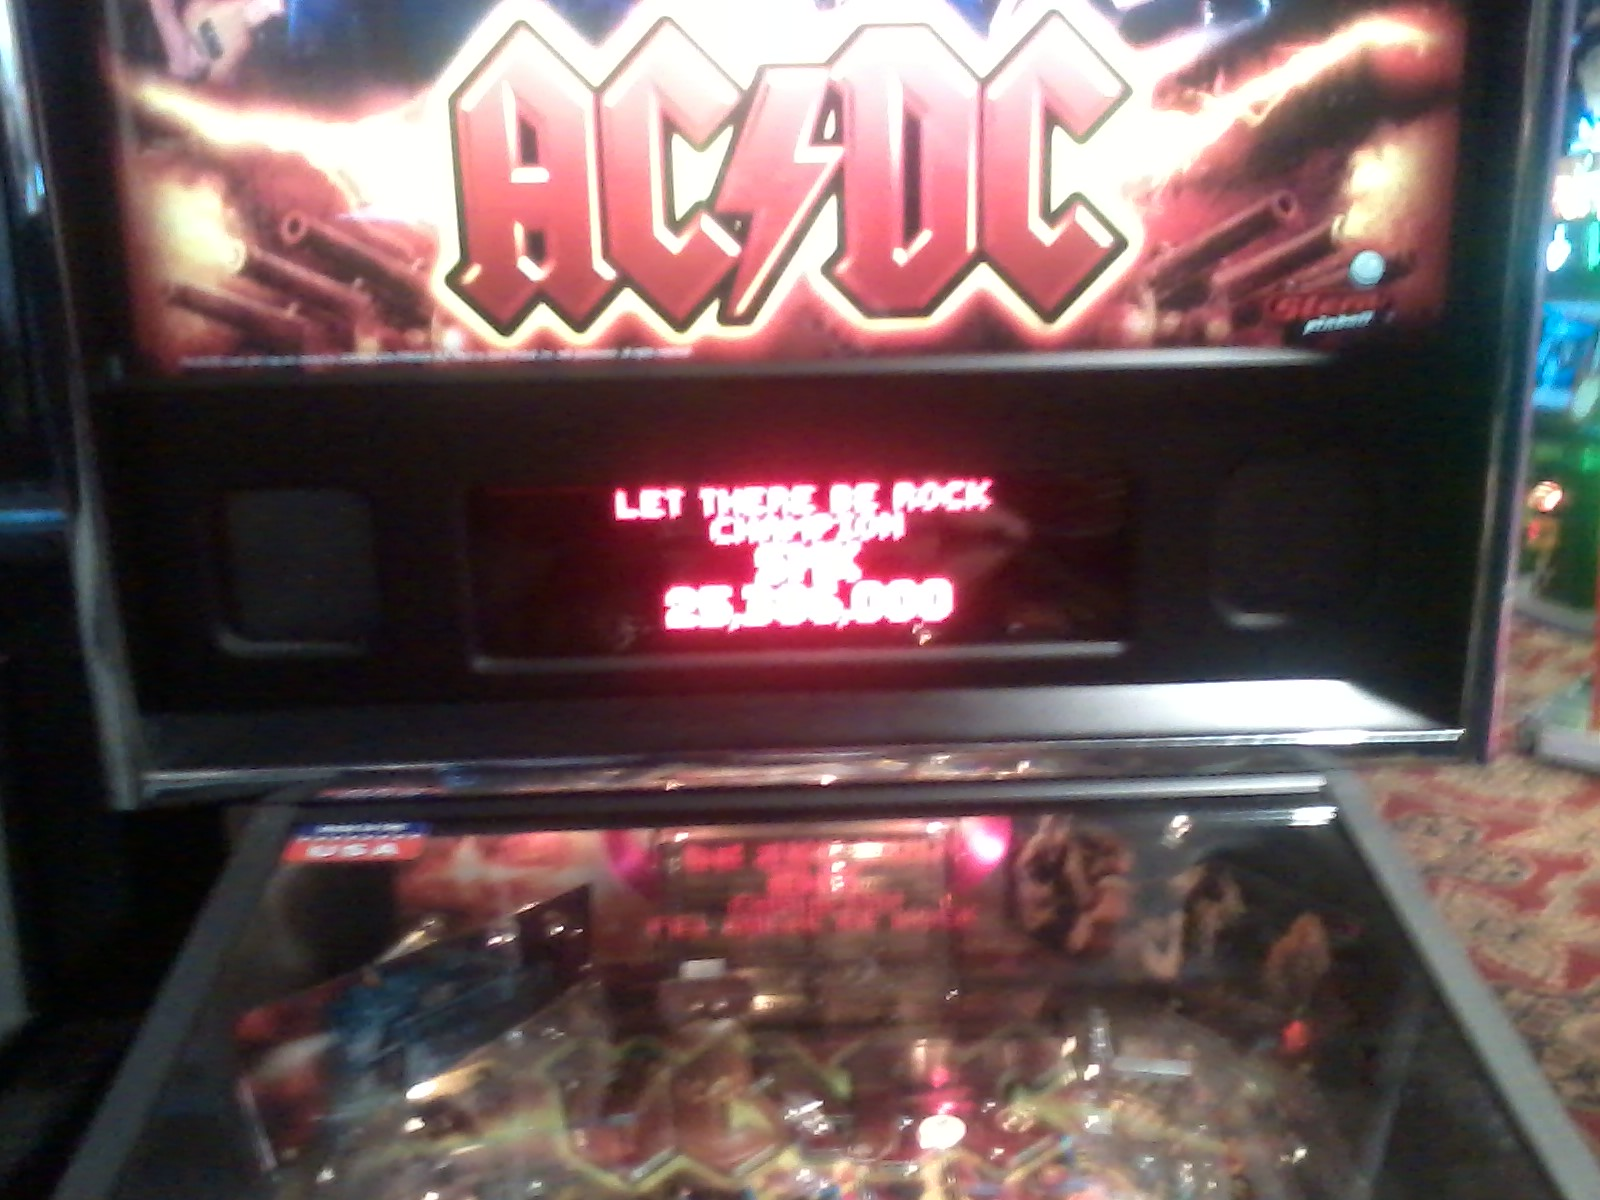 TheGalagaKing: AC/DC: Let There Be Rock (Pinball Bonus Mode) 25,386,000 points on 2019-03-08 21:42:16